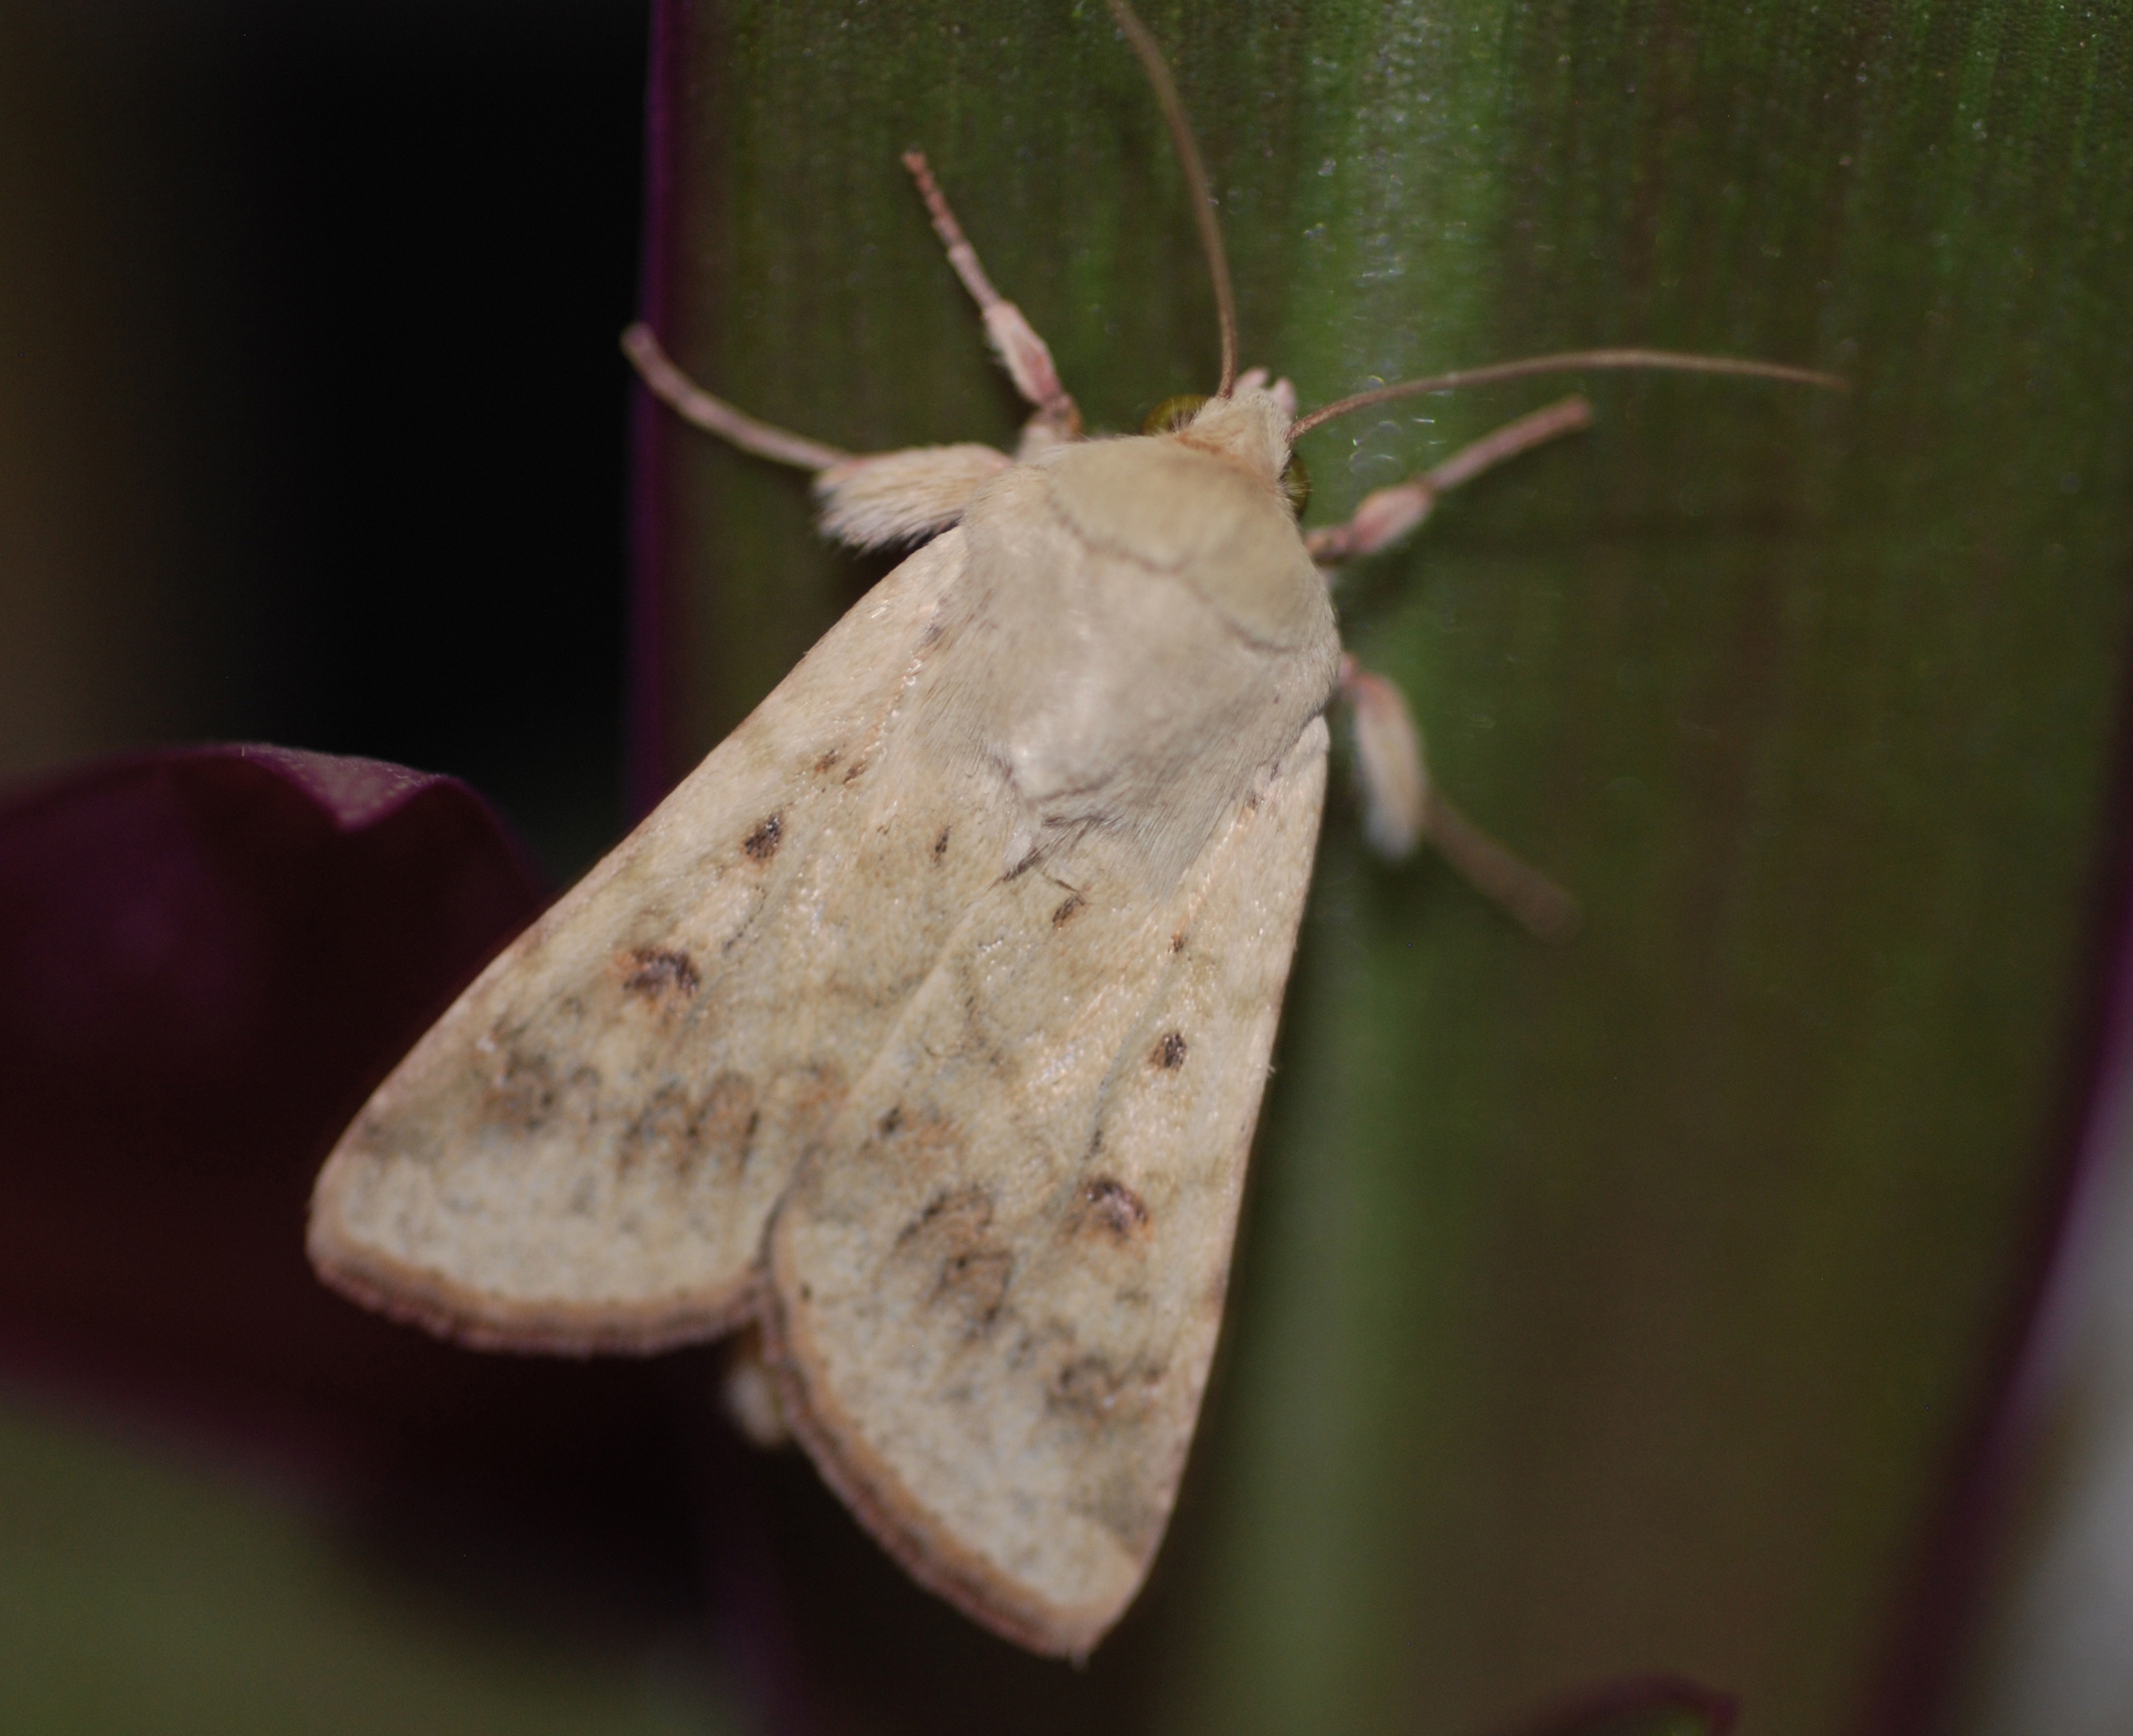 A moth. By studying how female sex attractants make male moths warm up their flight muscles faster but take flight prematurely, University of Utah biologists are learning about how odor affects animal behavior.